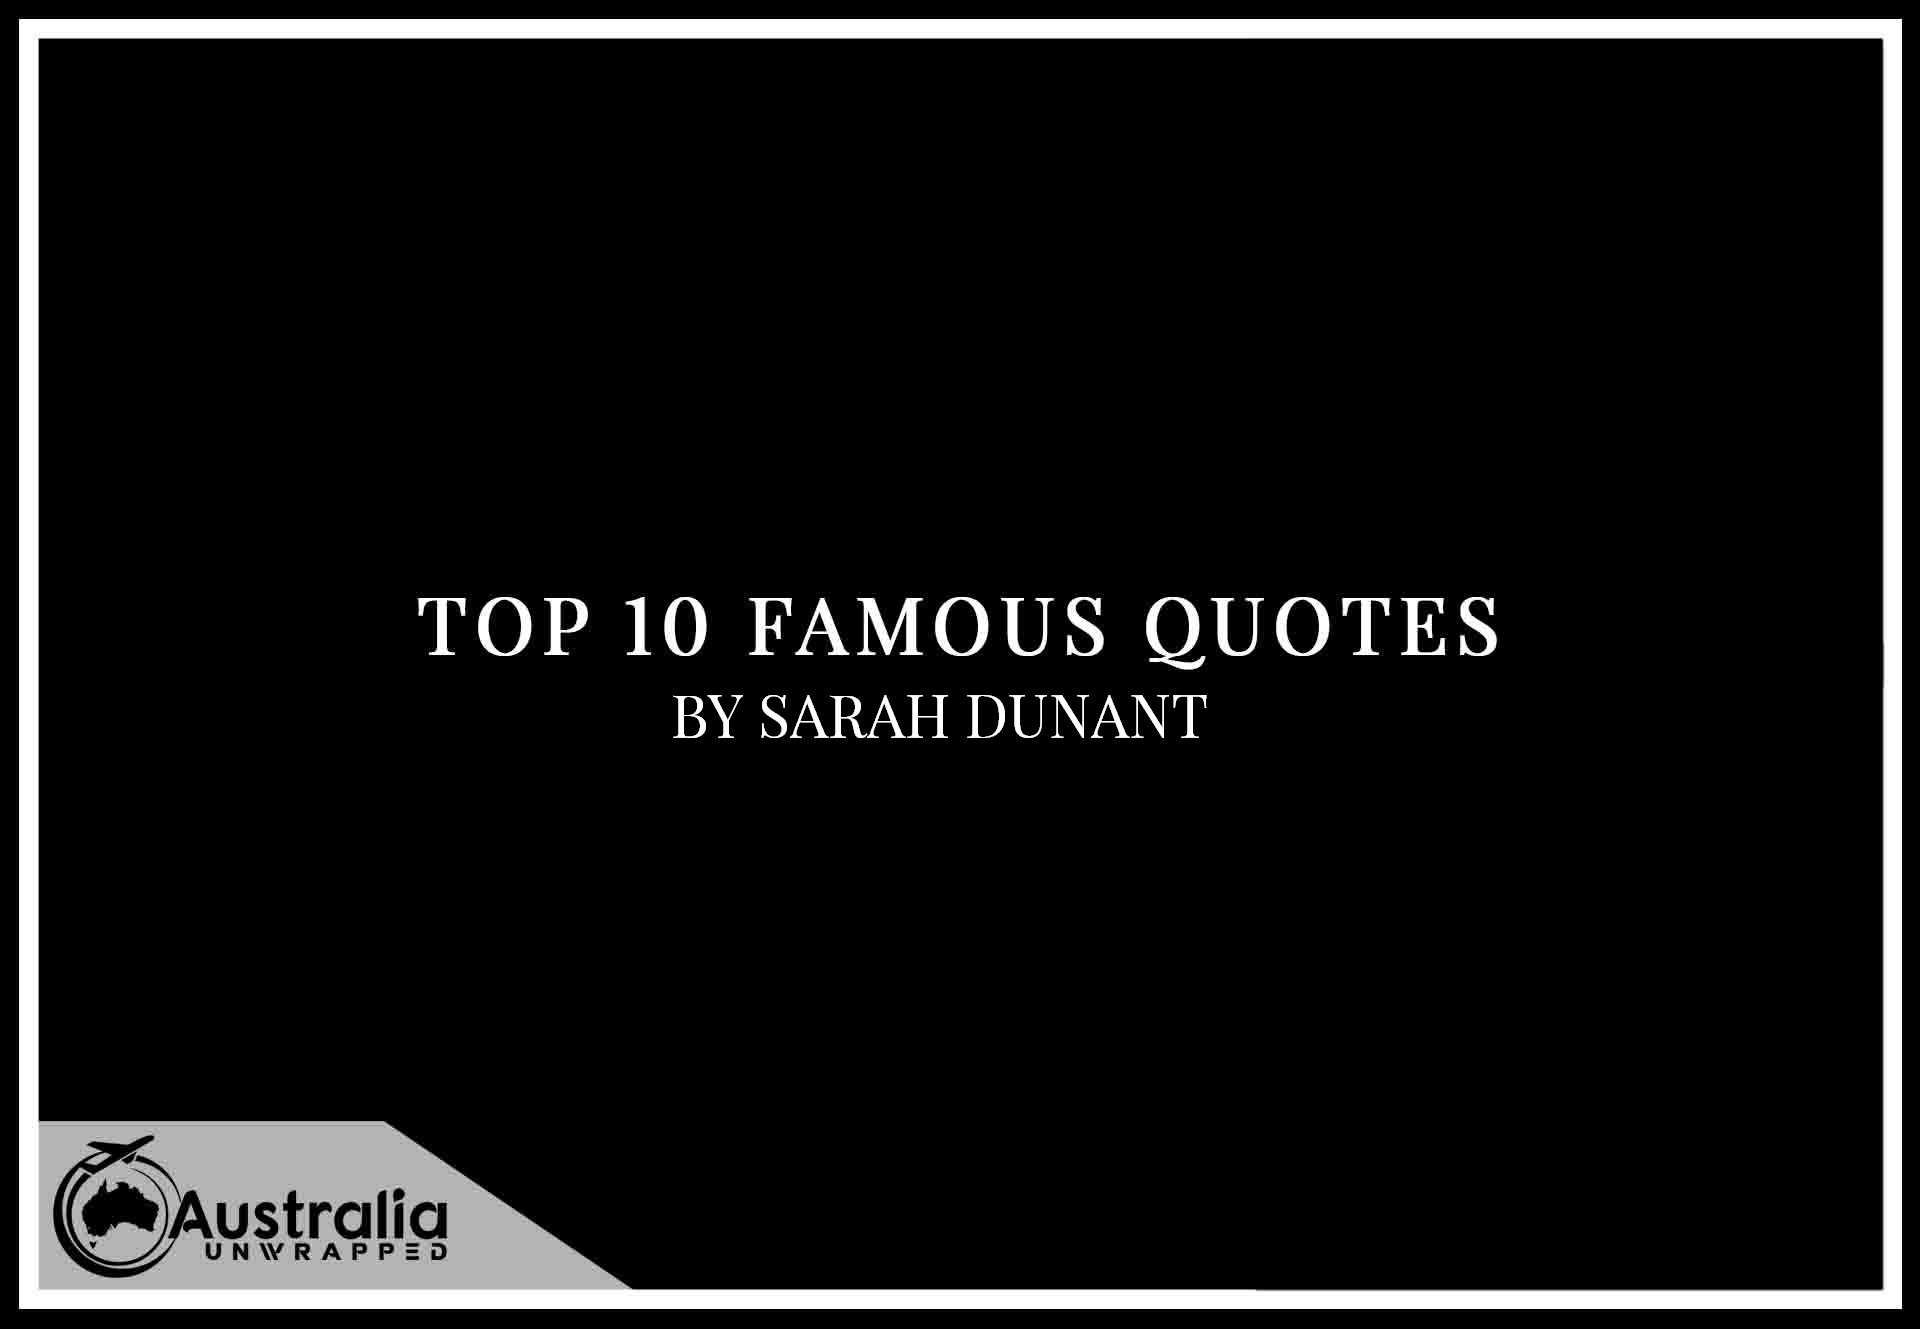 Top 10 Famous Quotes by Author Sarah Dunant